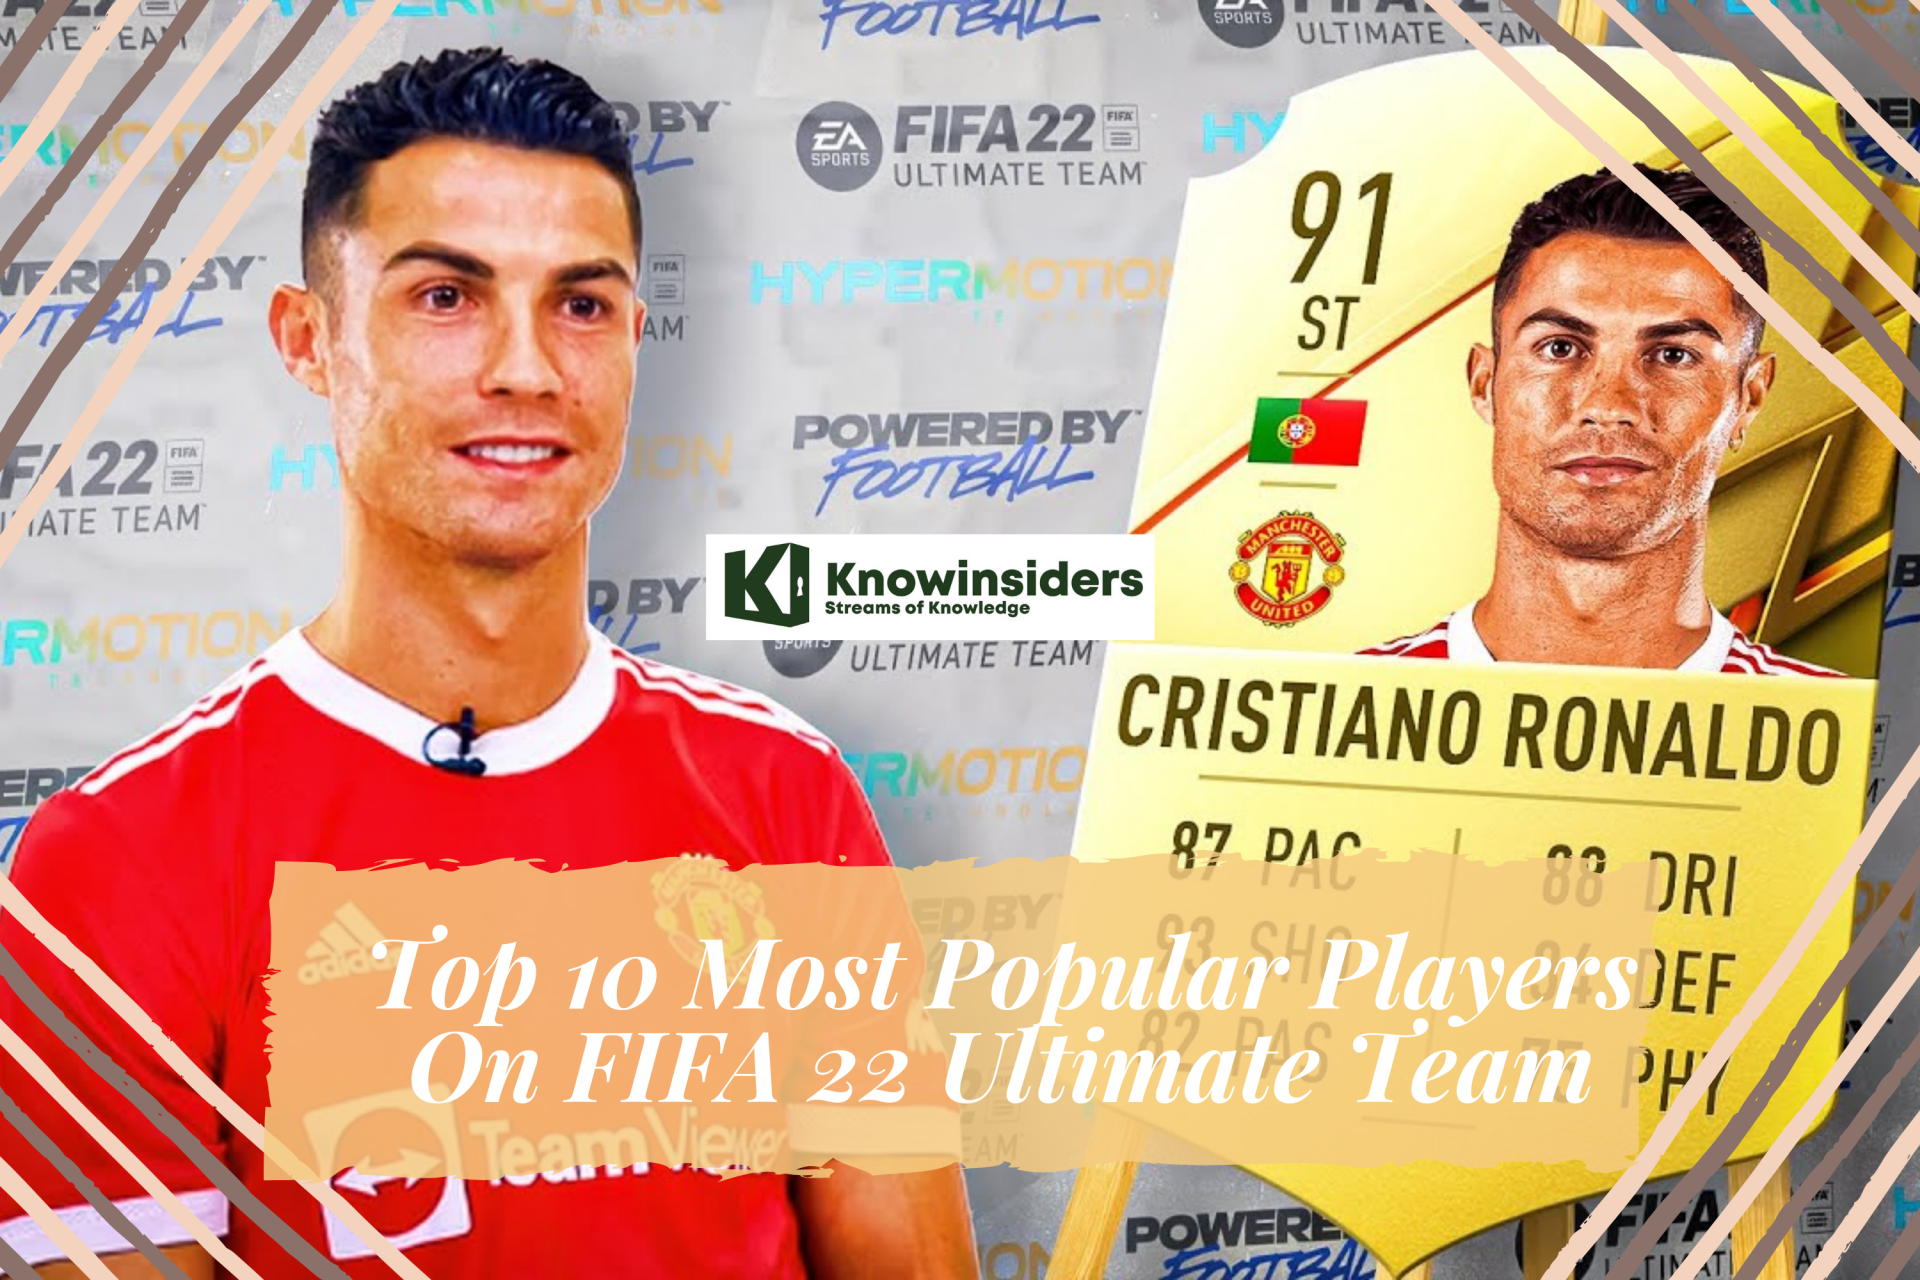 Top 10 Most Popular Players On FIFA 22 Ultimate Team